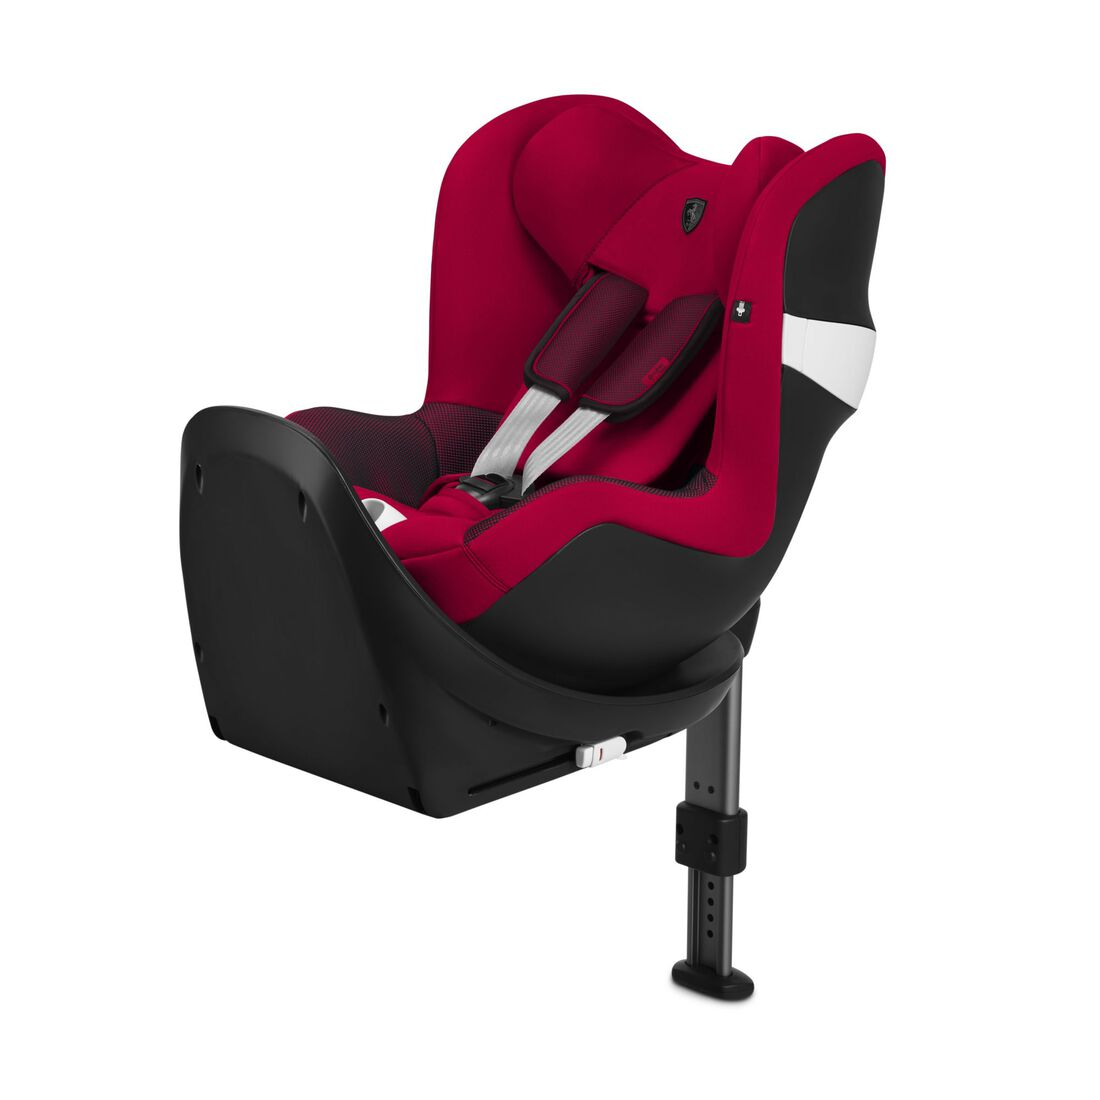 CYBEX Sirona M2 i-Size - Ferrari Racing Red in Ferrari Racing Red large image number 2